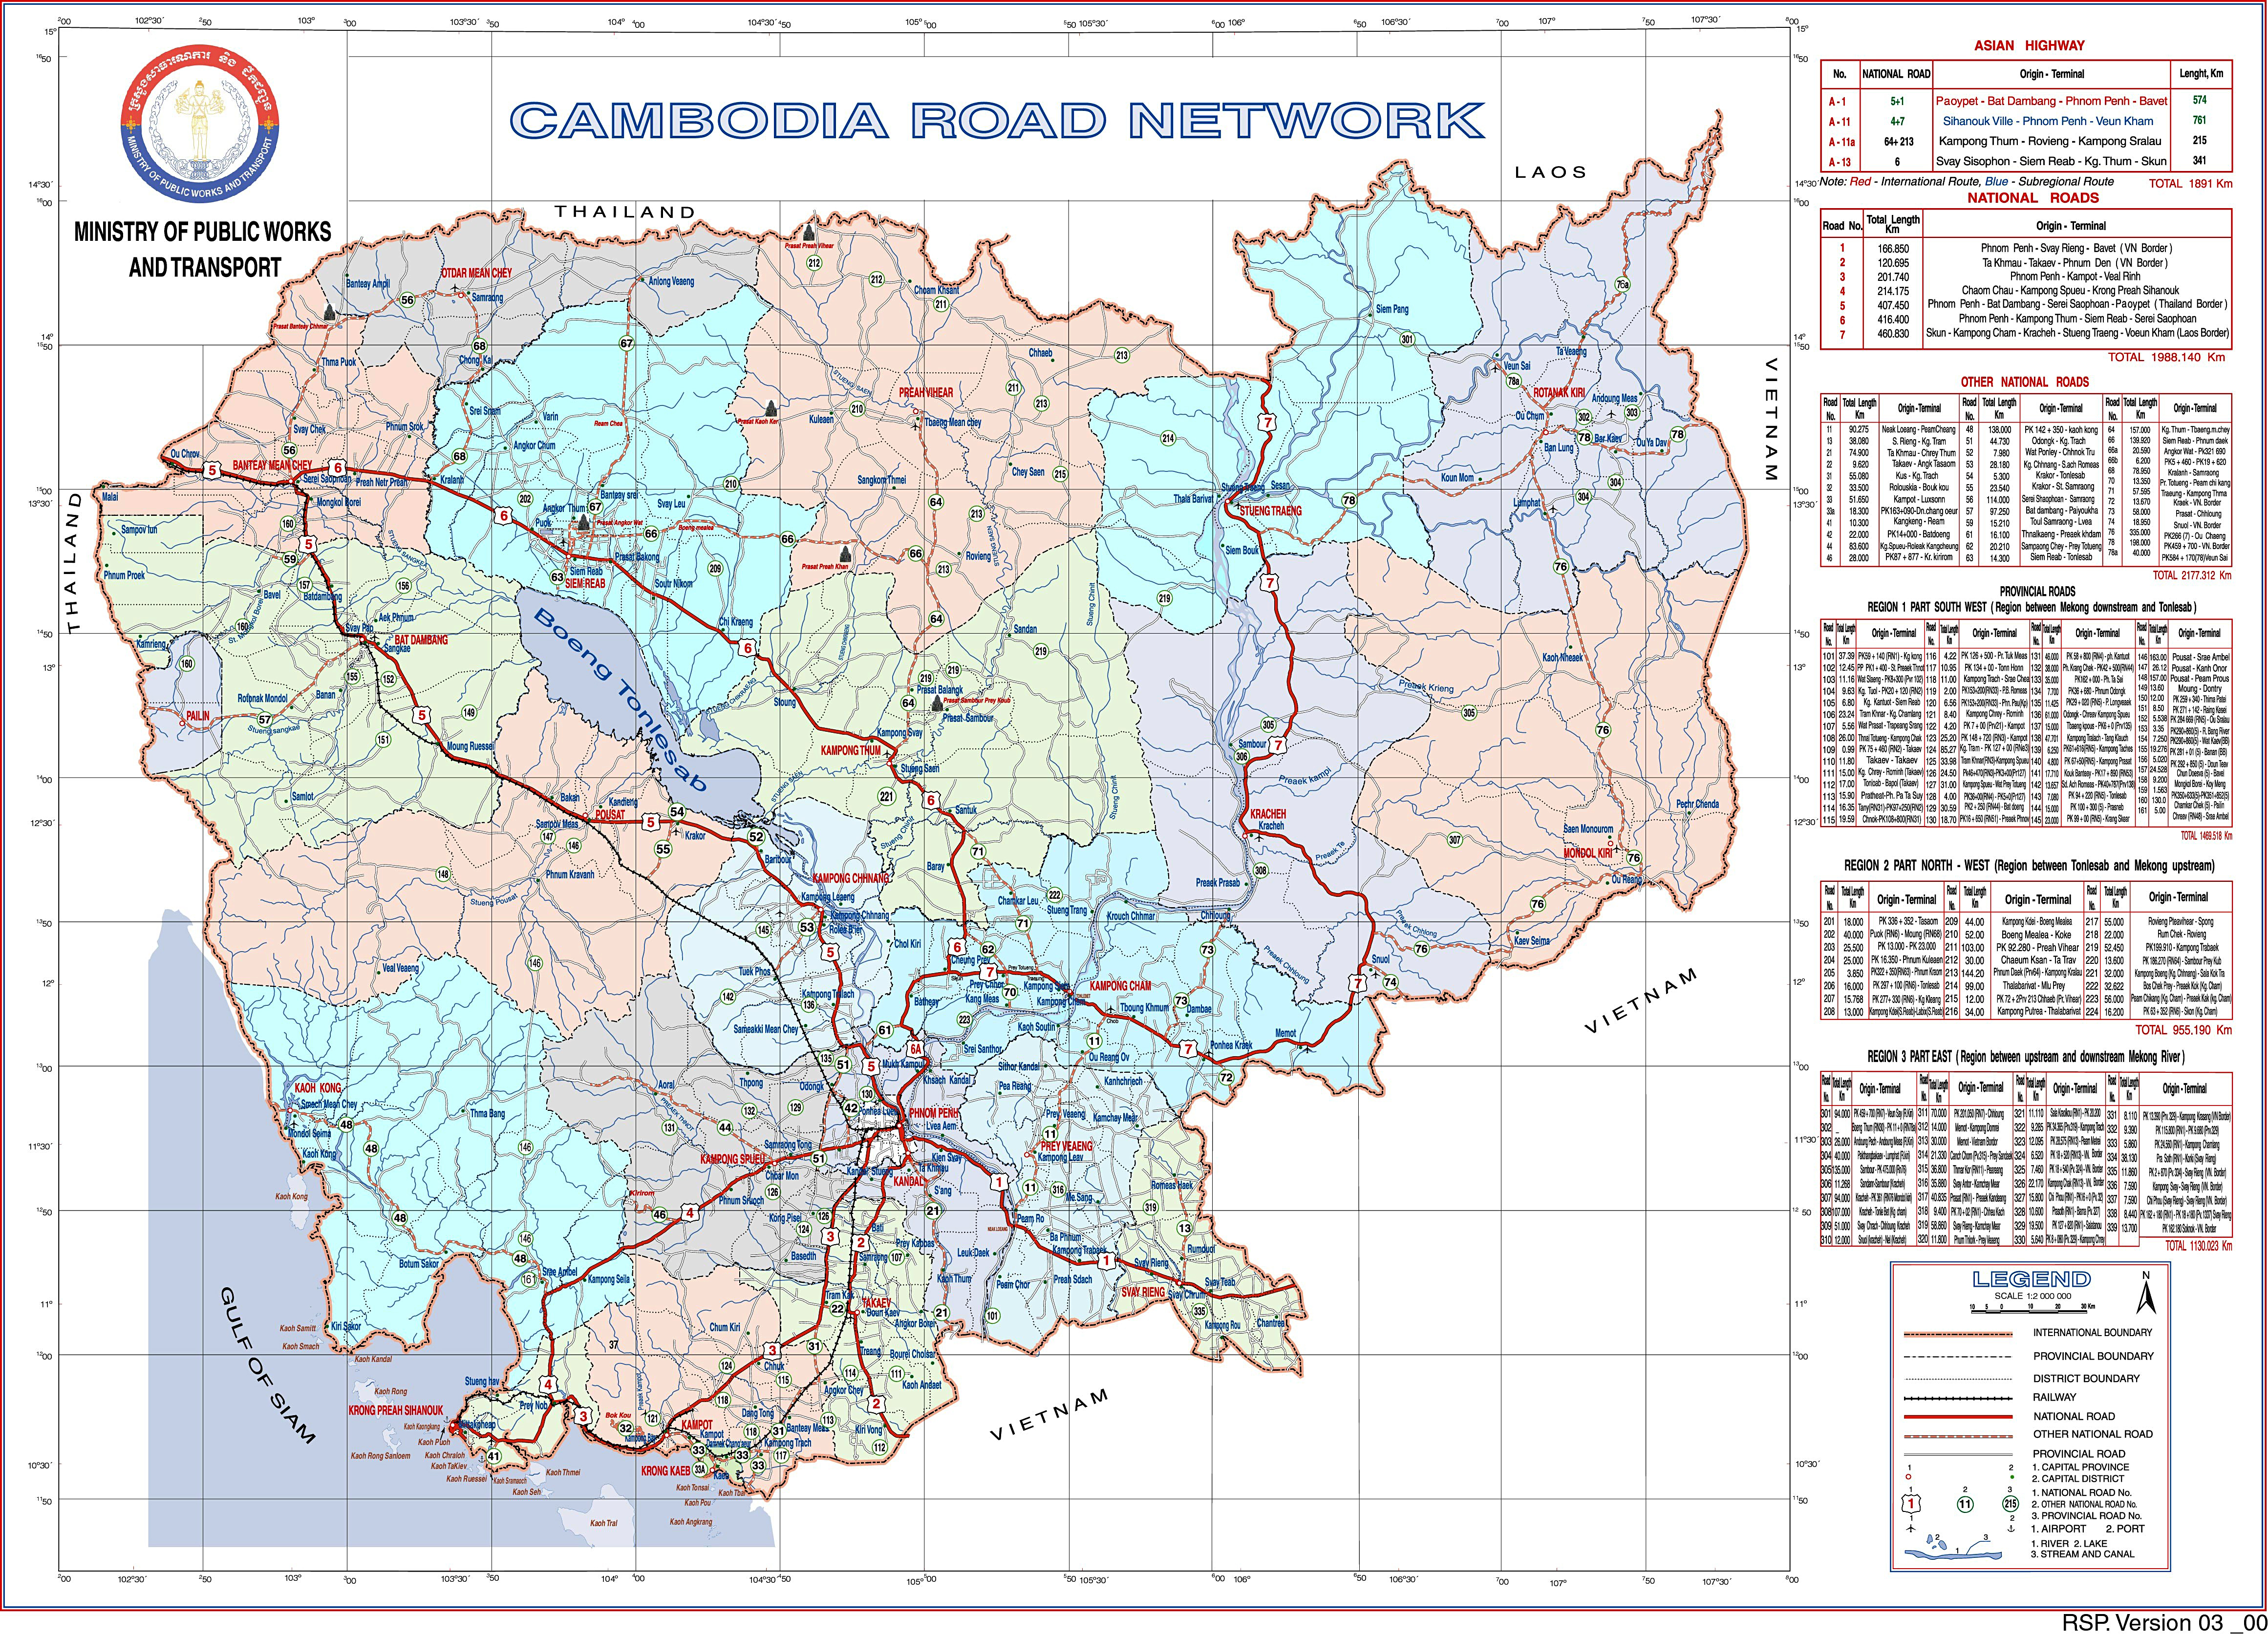 Brought to you by The Ministry of Public Works and Transport – A Tidy Map of the National and Provincial Roads of Cambodia